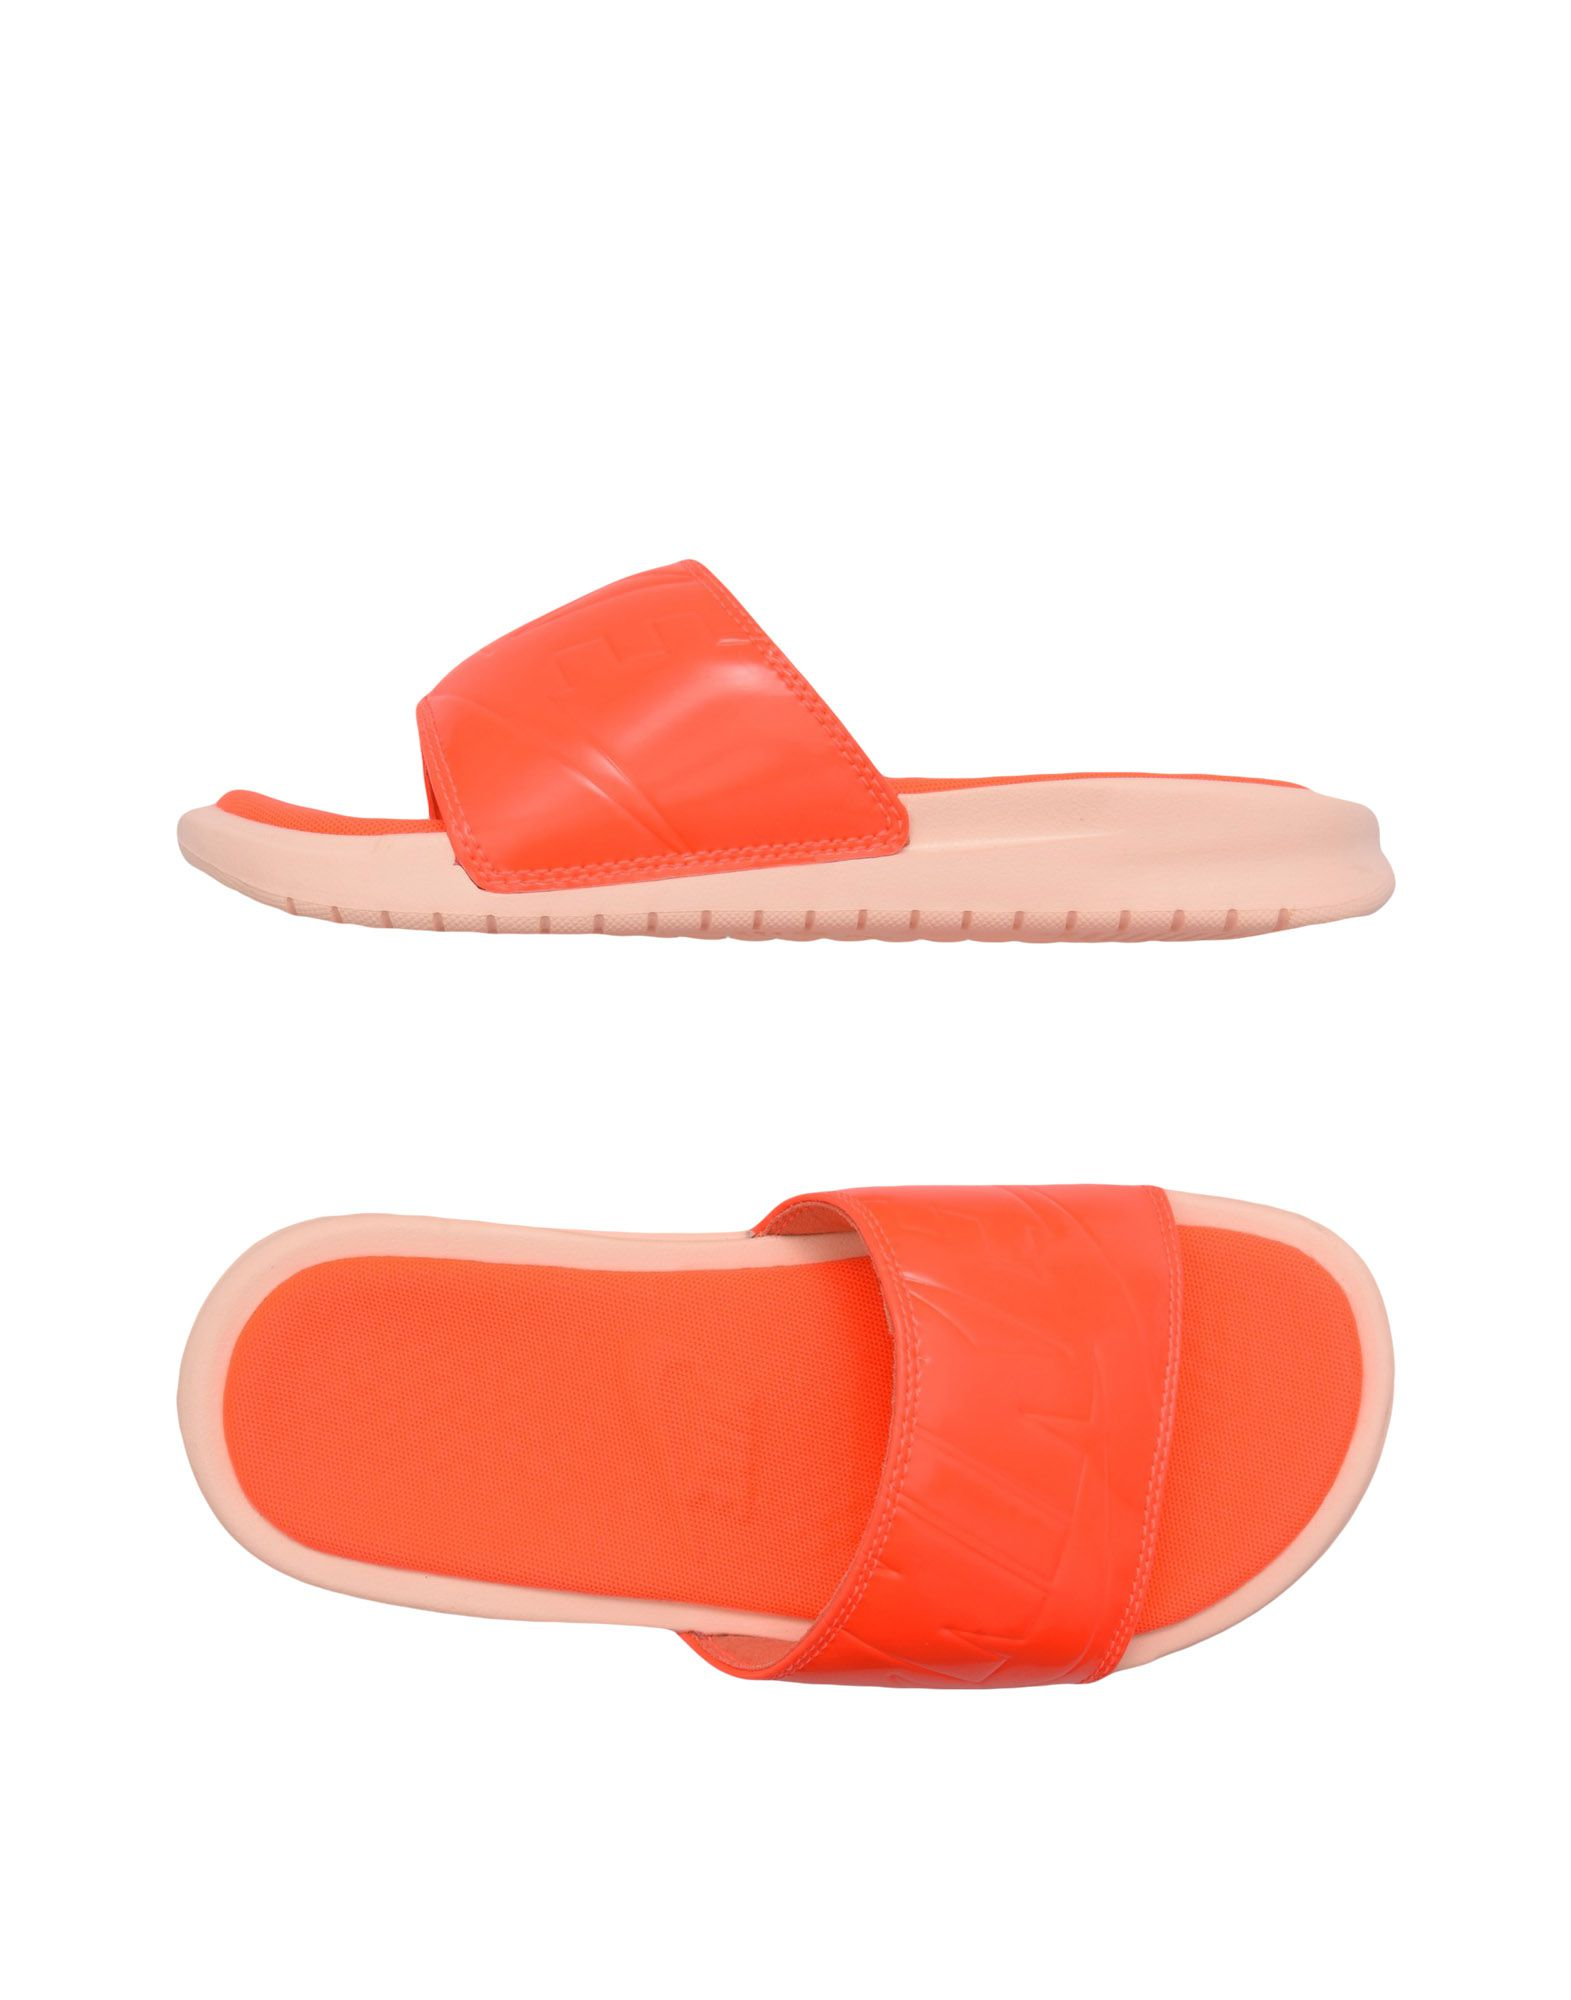 Nike Benassi Sandals Jdi Ultra Se - Sandals Benassi - Women Nike Sandals online on  United Kingdom - 11482195TL 1246ba